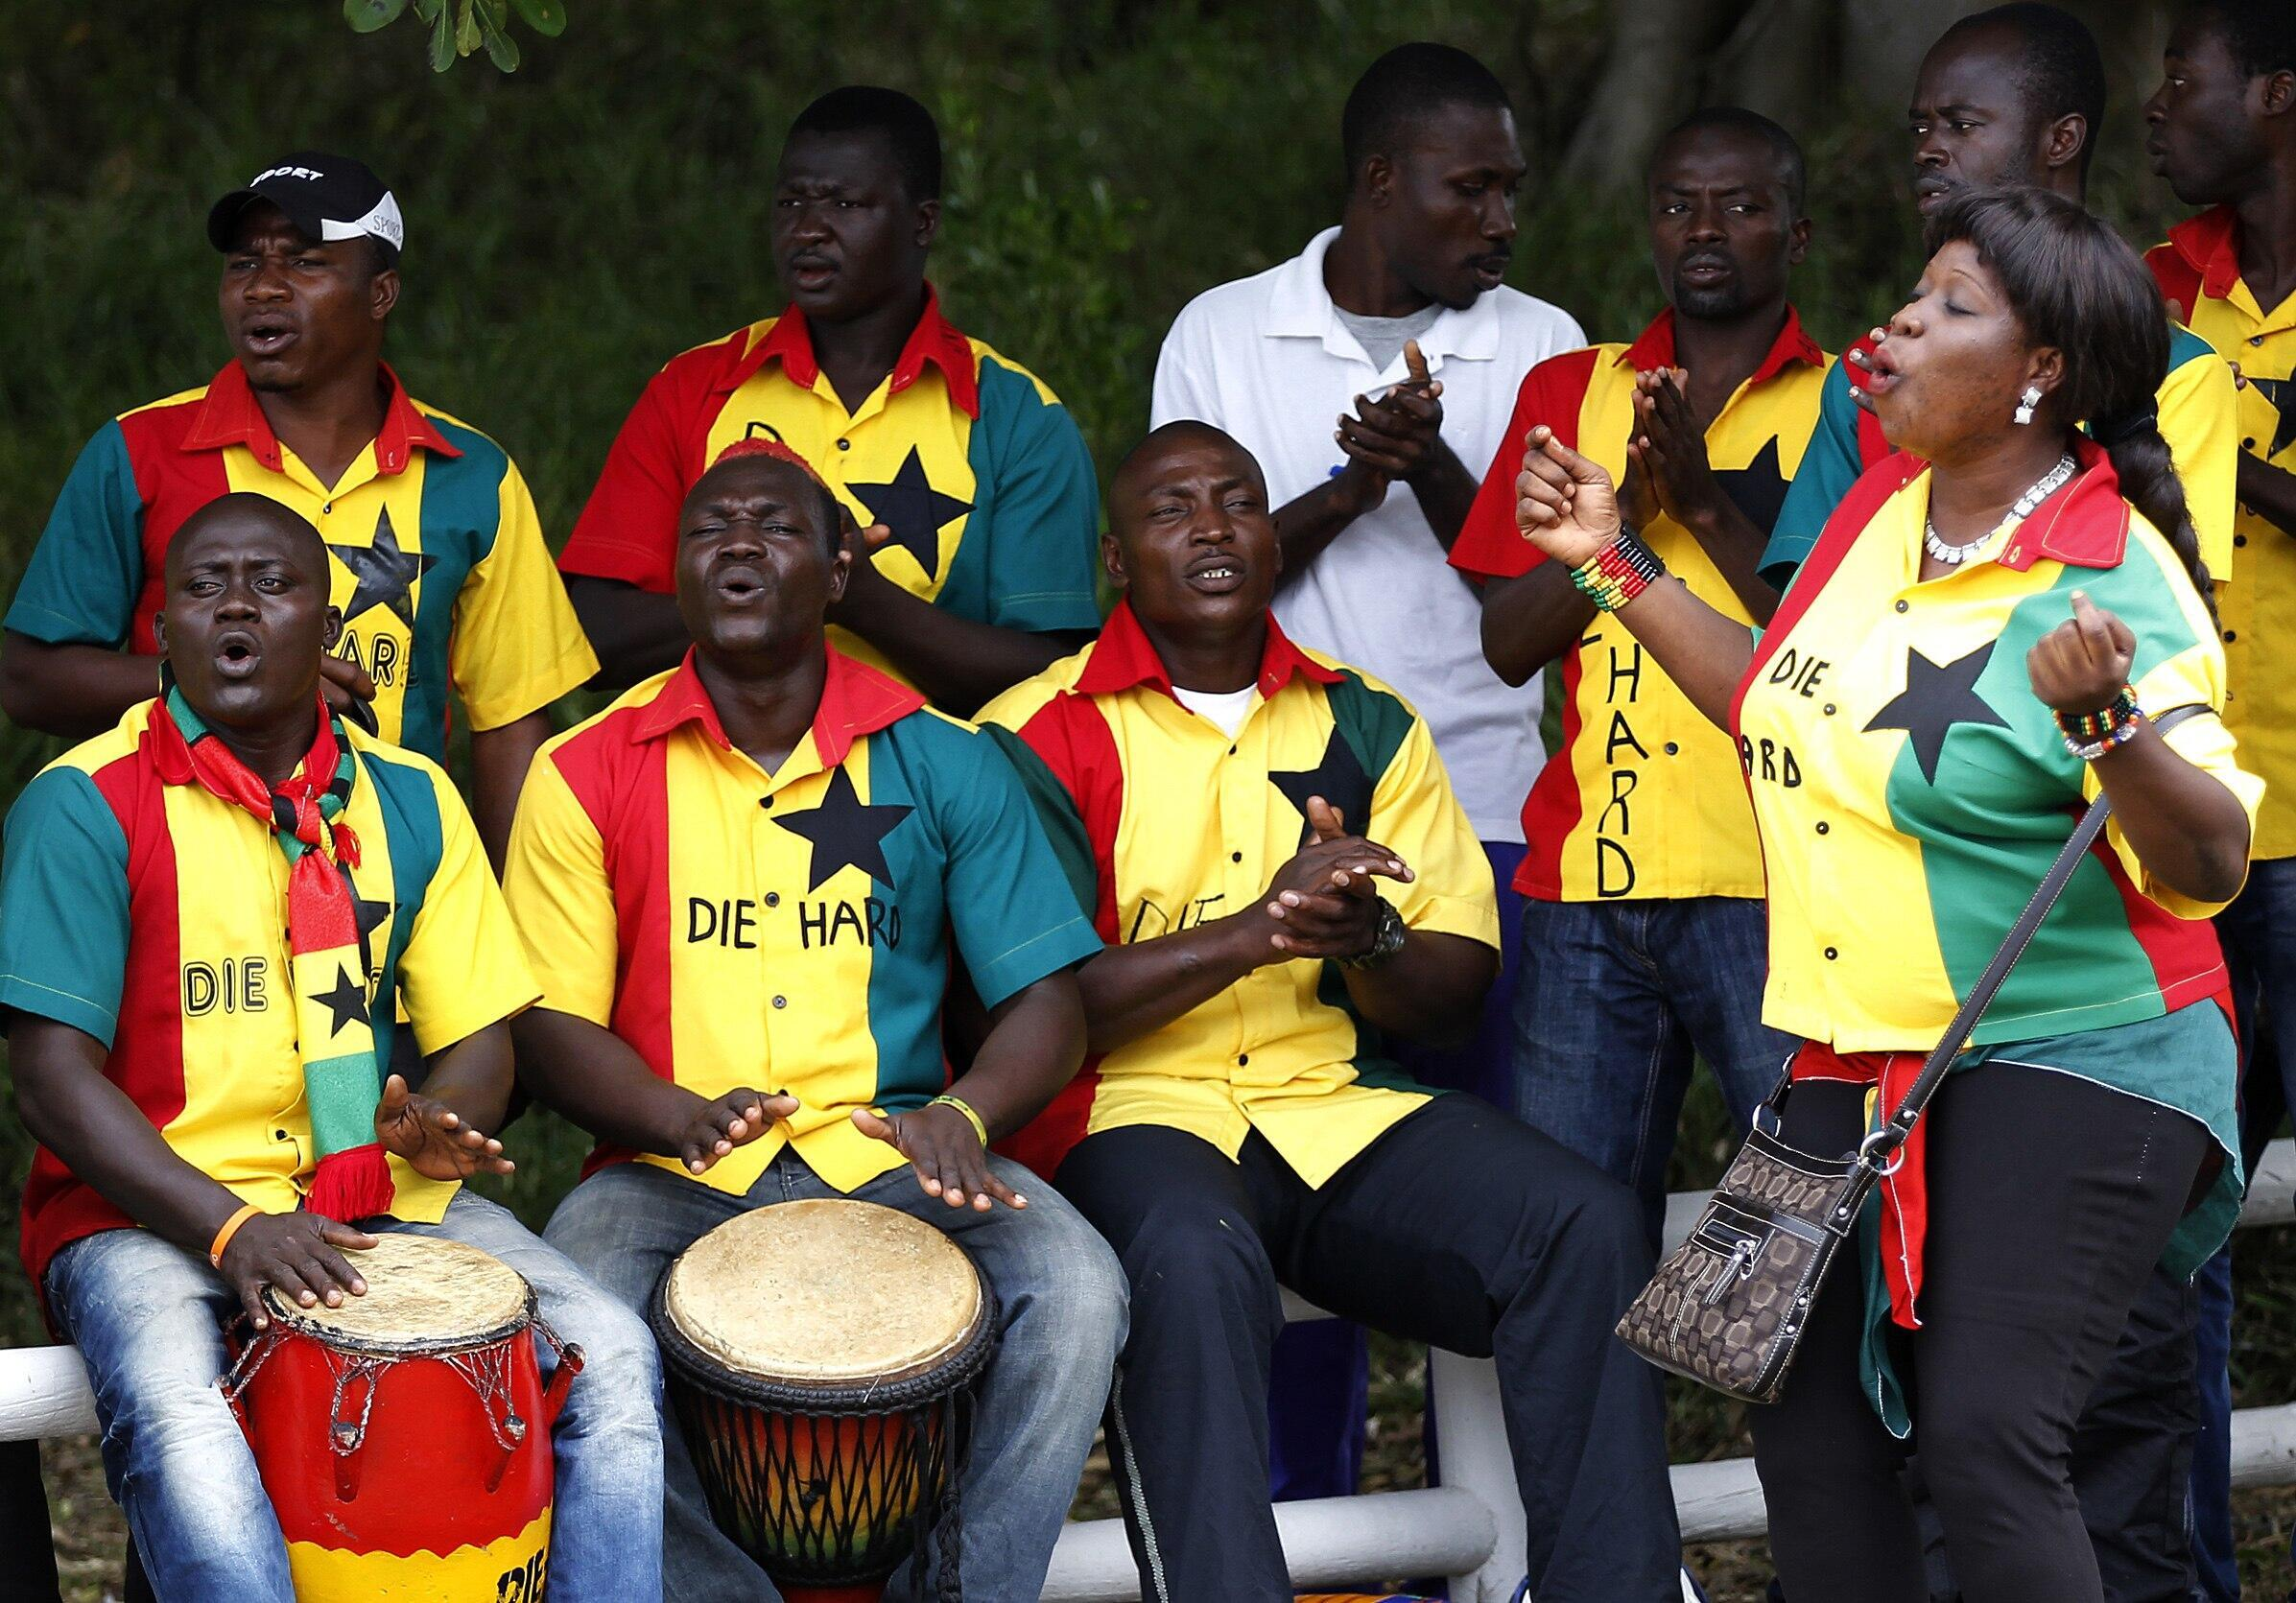 Supporters of Ghana's national football team sing during the team's training session in Port Elizabeth